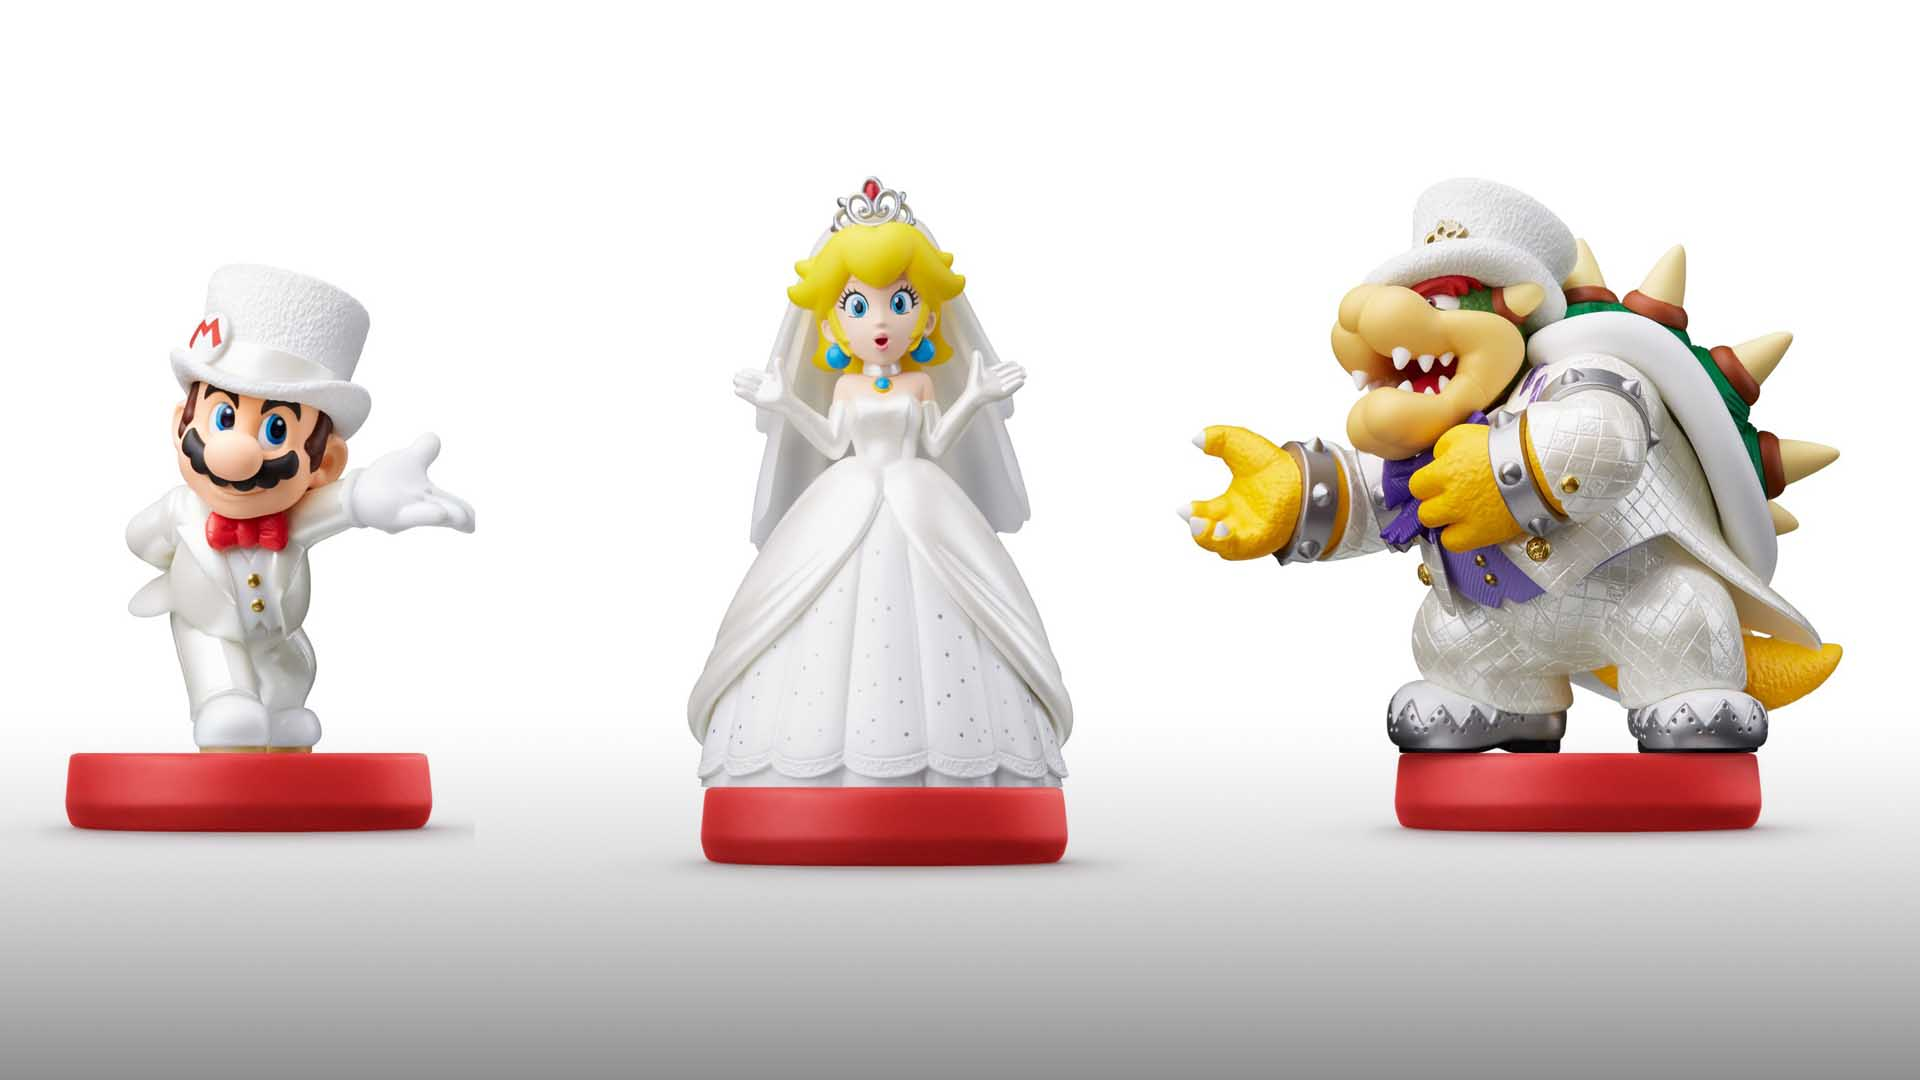 Mario Can Wear Peachs Wedding Dress In Mario Odyssey Allgamers